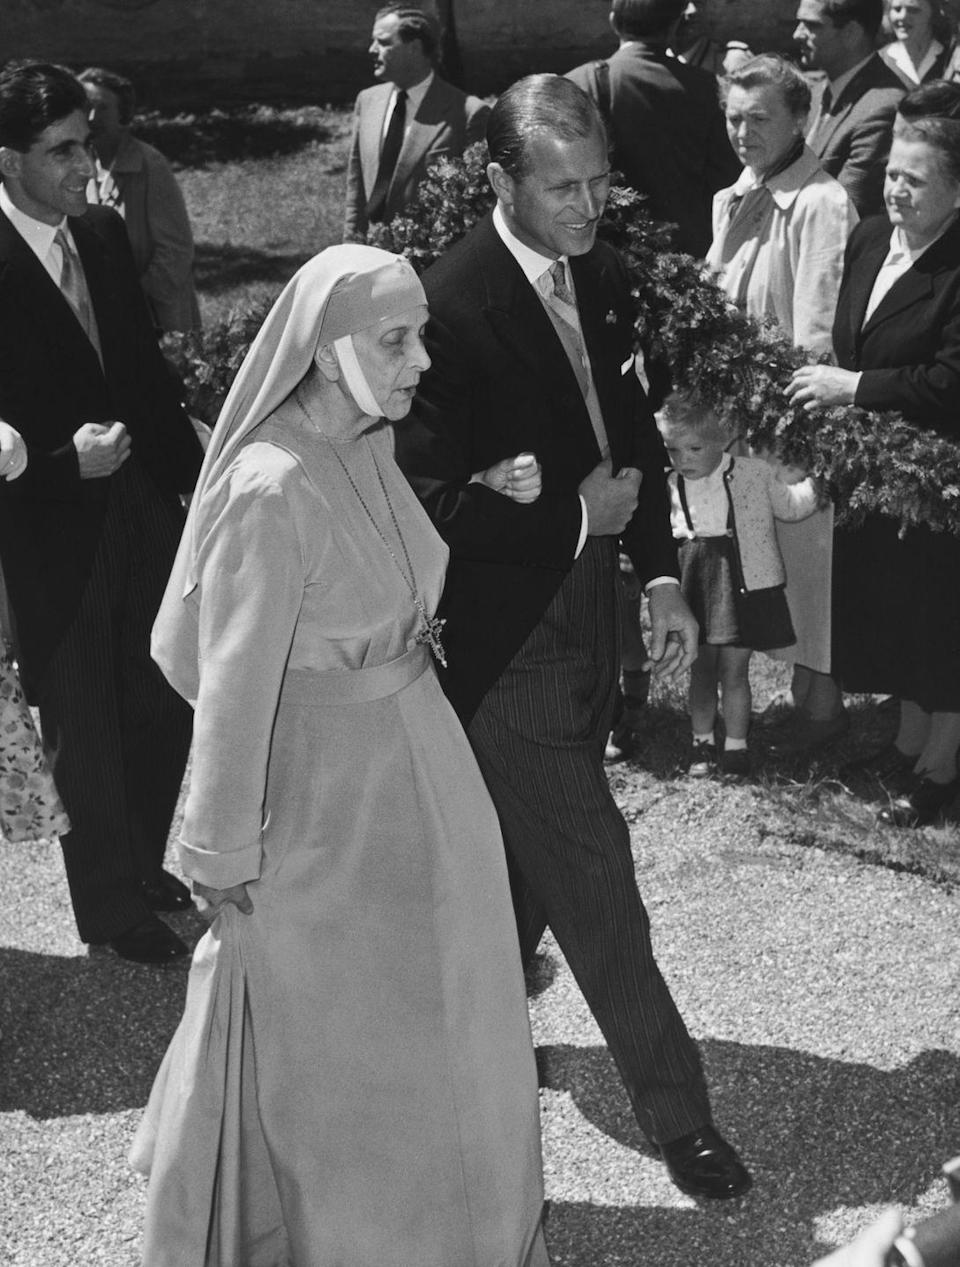 <p>Prince Philip attends the wedding of Prince Tomislav of Yugoslavia to Princess Margarita of Baden in Germany in 1957. He's accompanied by his mother, Princess Andrew of Greece (formerly Princess Alice of Battenberg).</p>